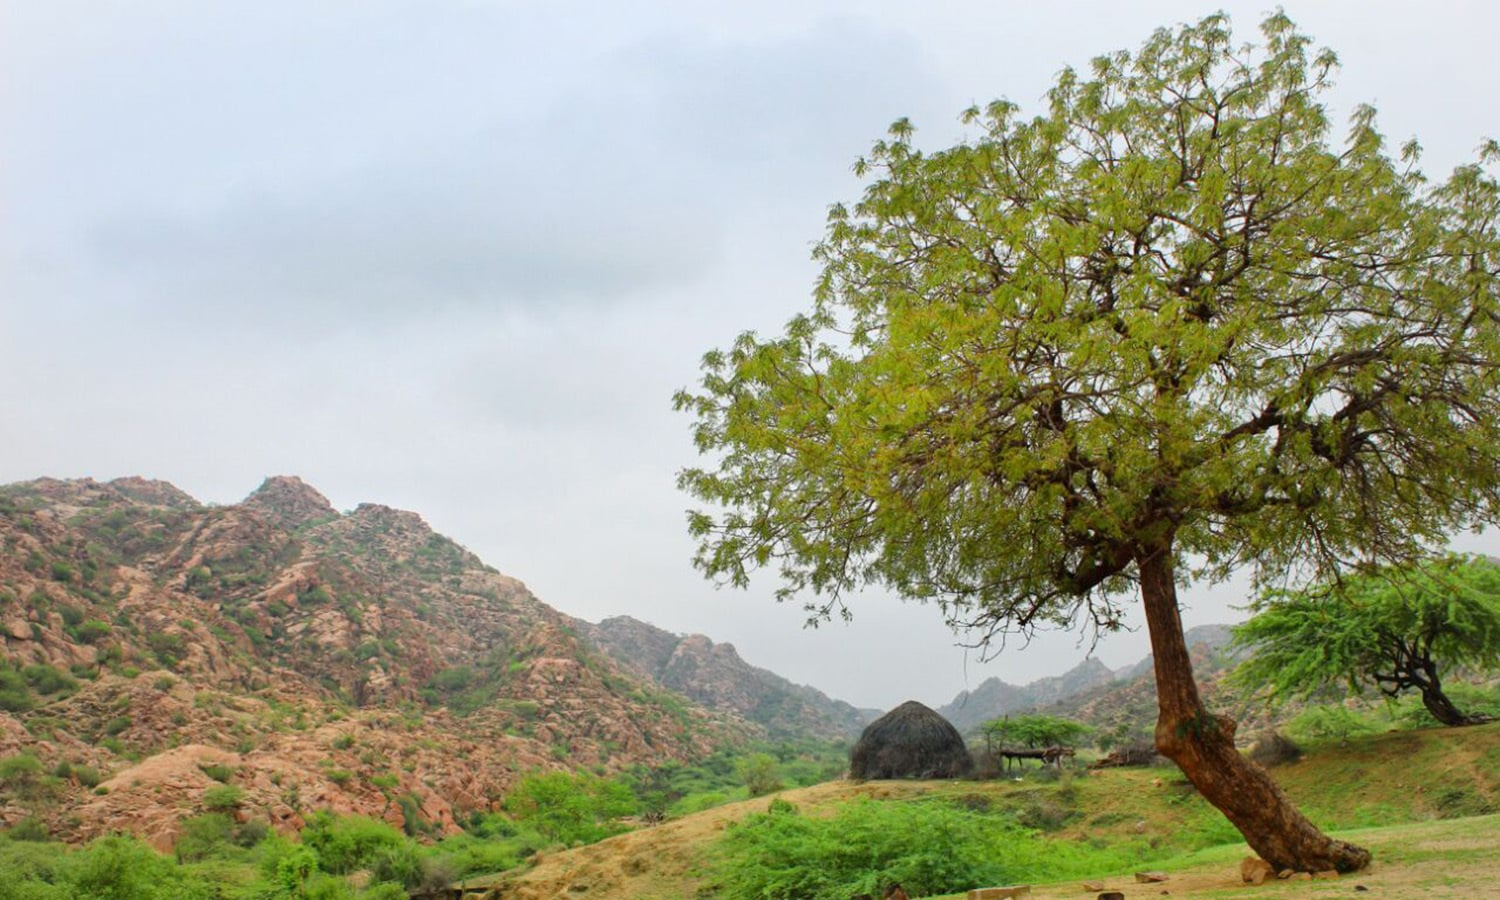 Tharis, who rejoiced at the heavy rainfall that came after a long dry spell this year, have thronged various picnic points of the desert region to enjoy the pleasant weather and captivating natural beauty unveiled by the continuous downpour.